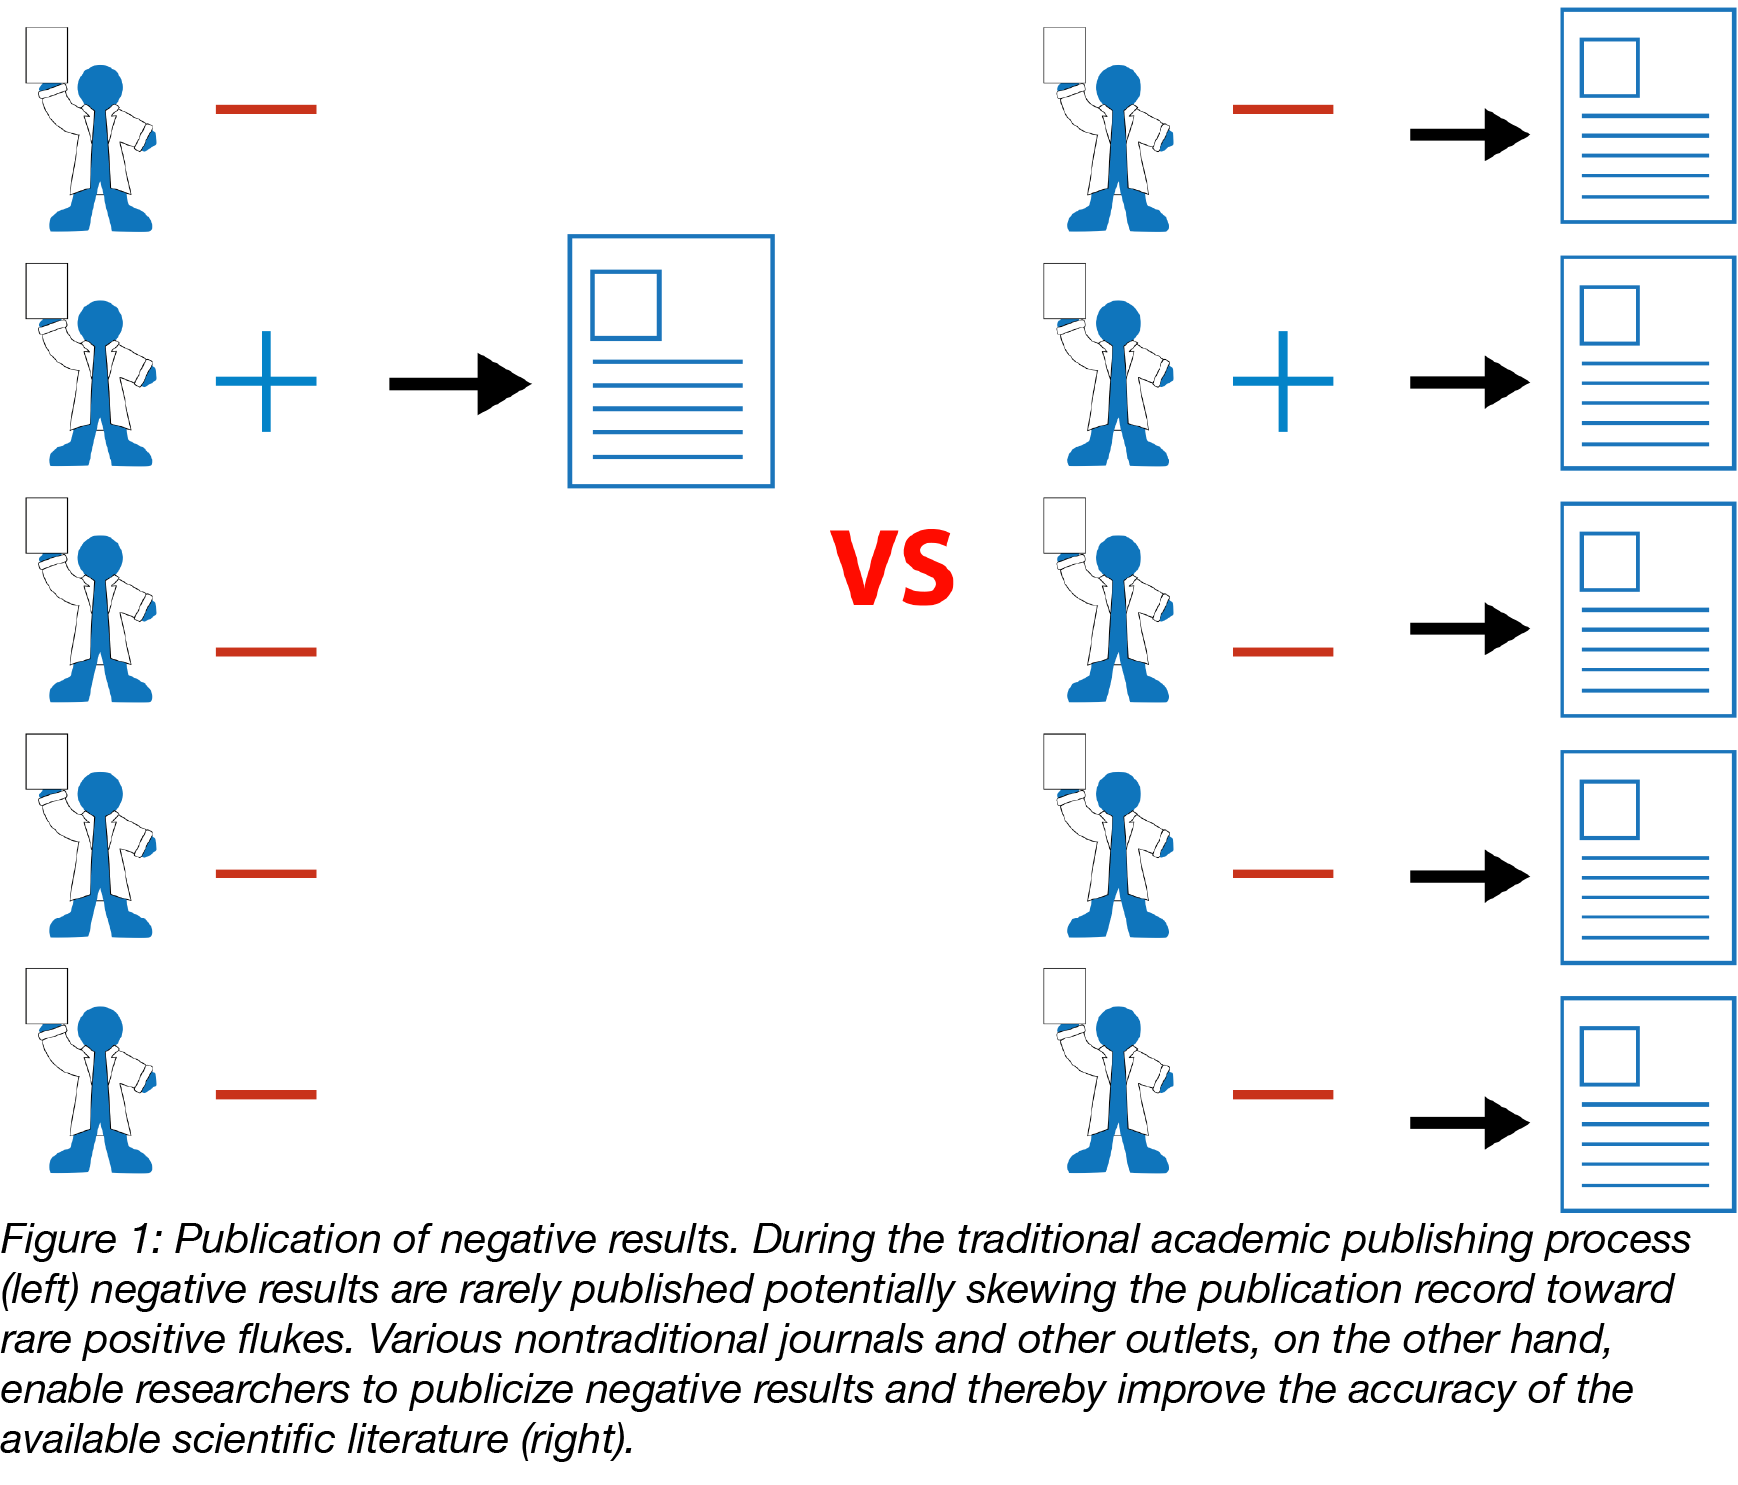 Publication of negative results